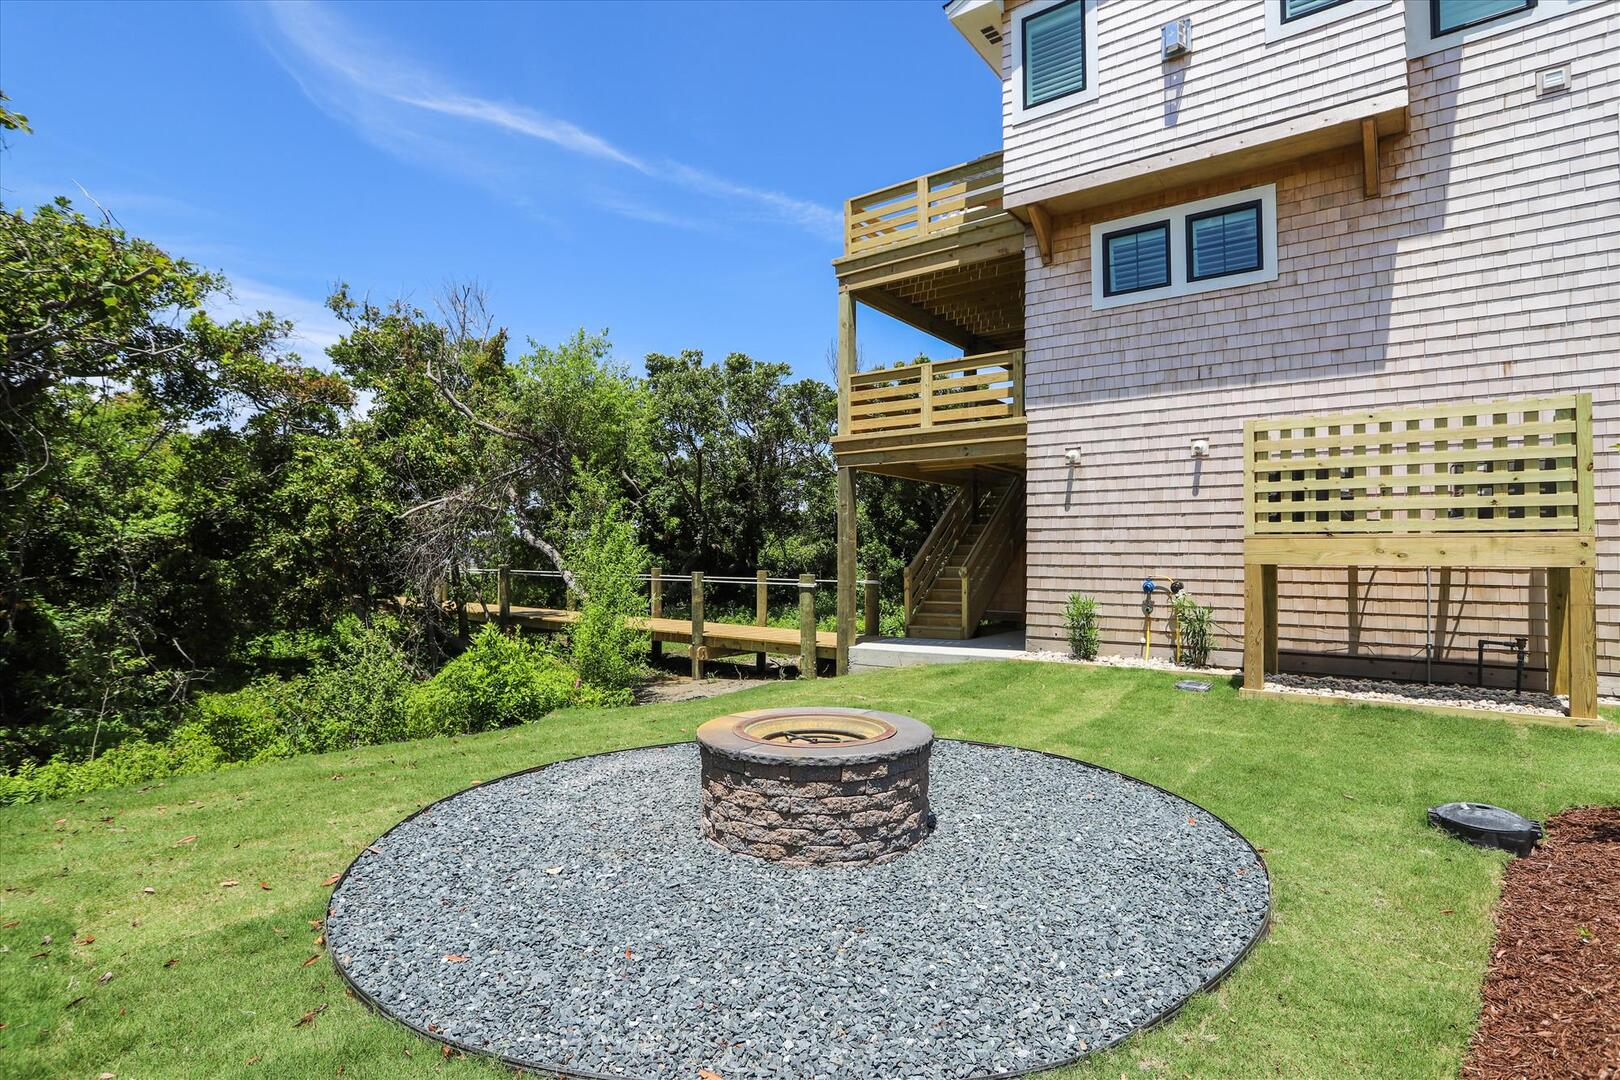 Ground Level,Fire Pit,